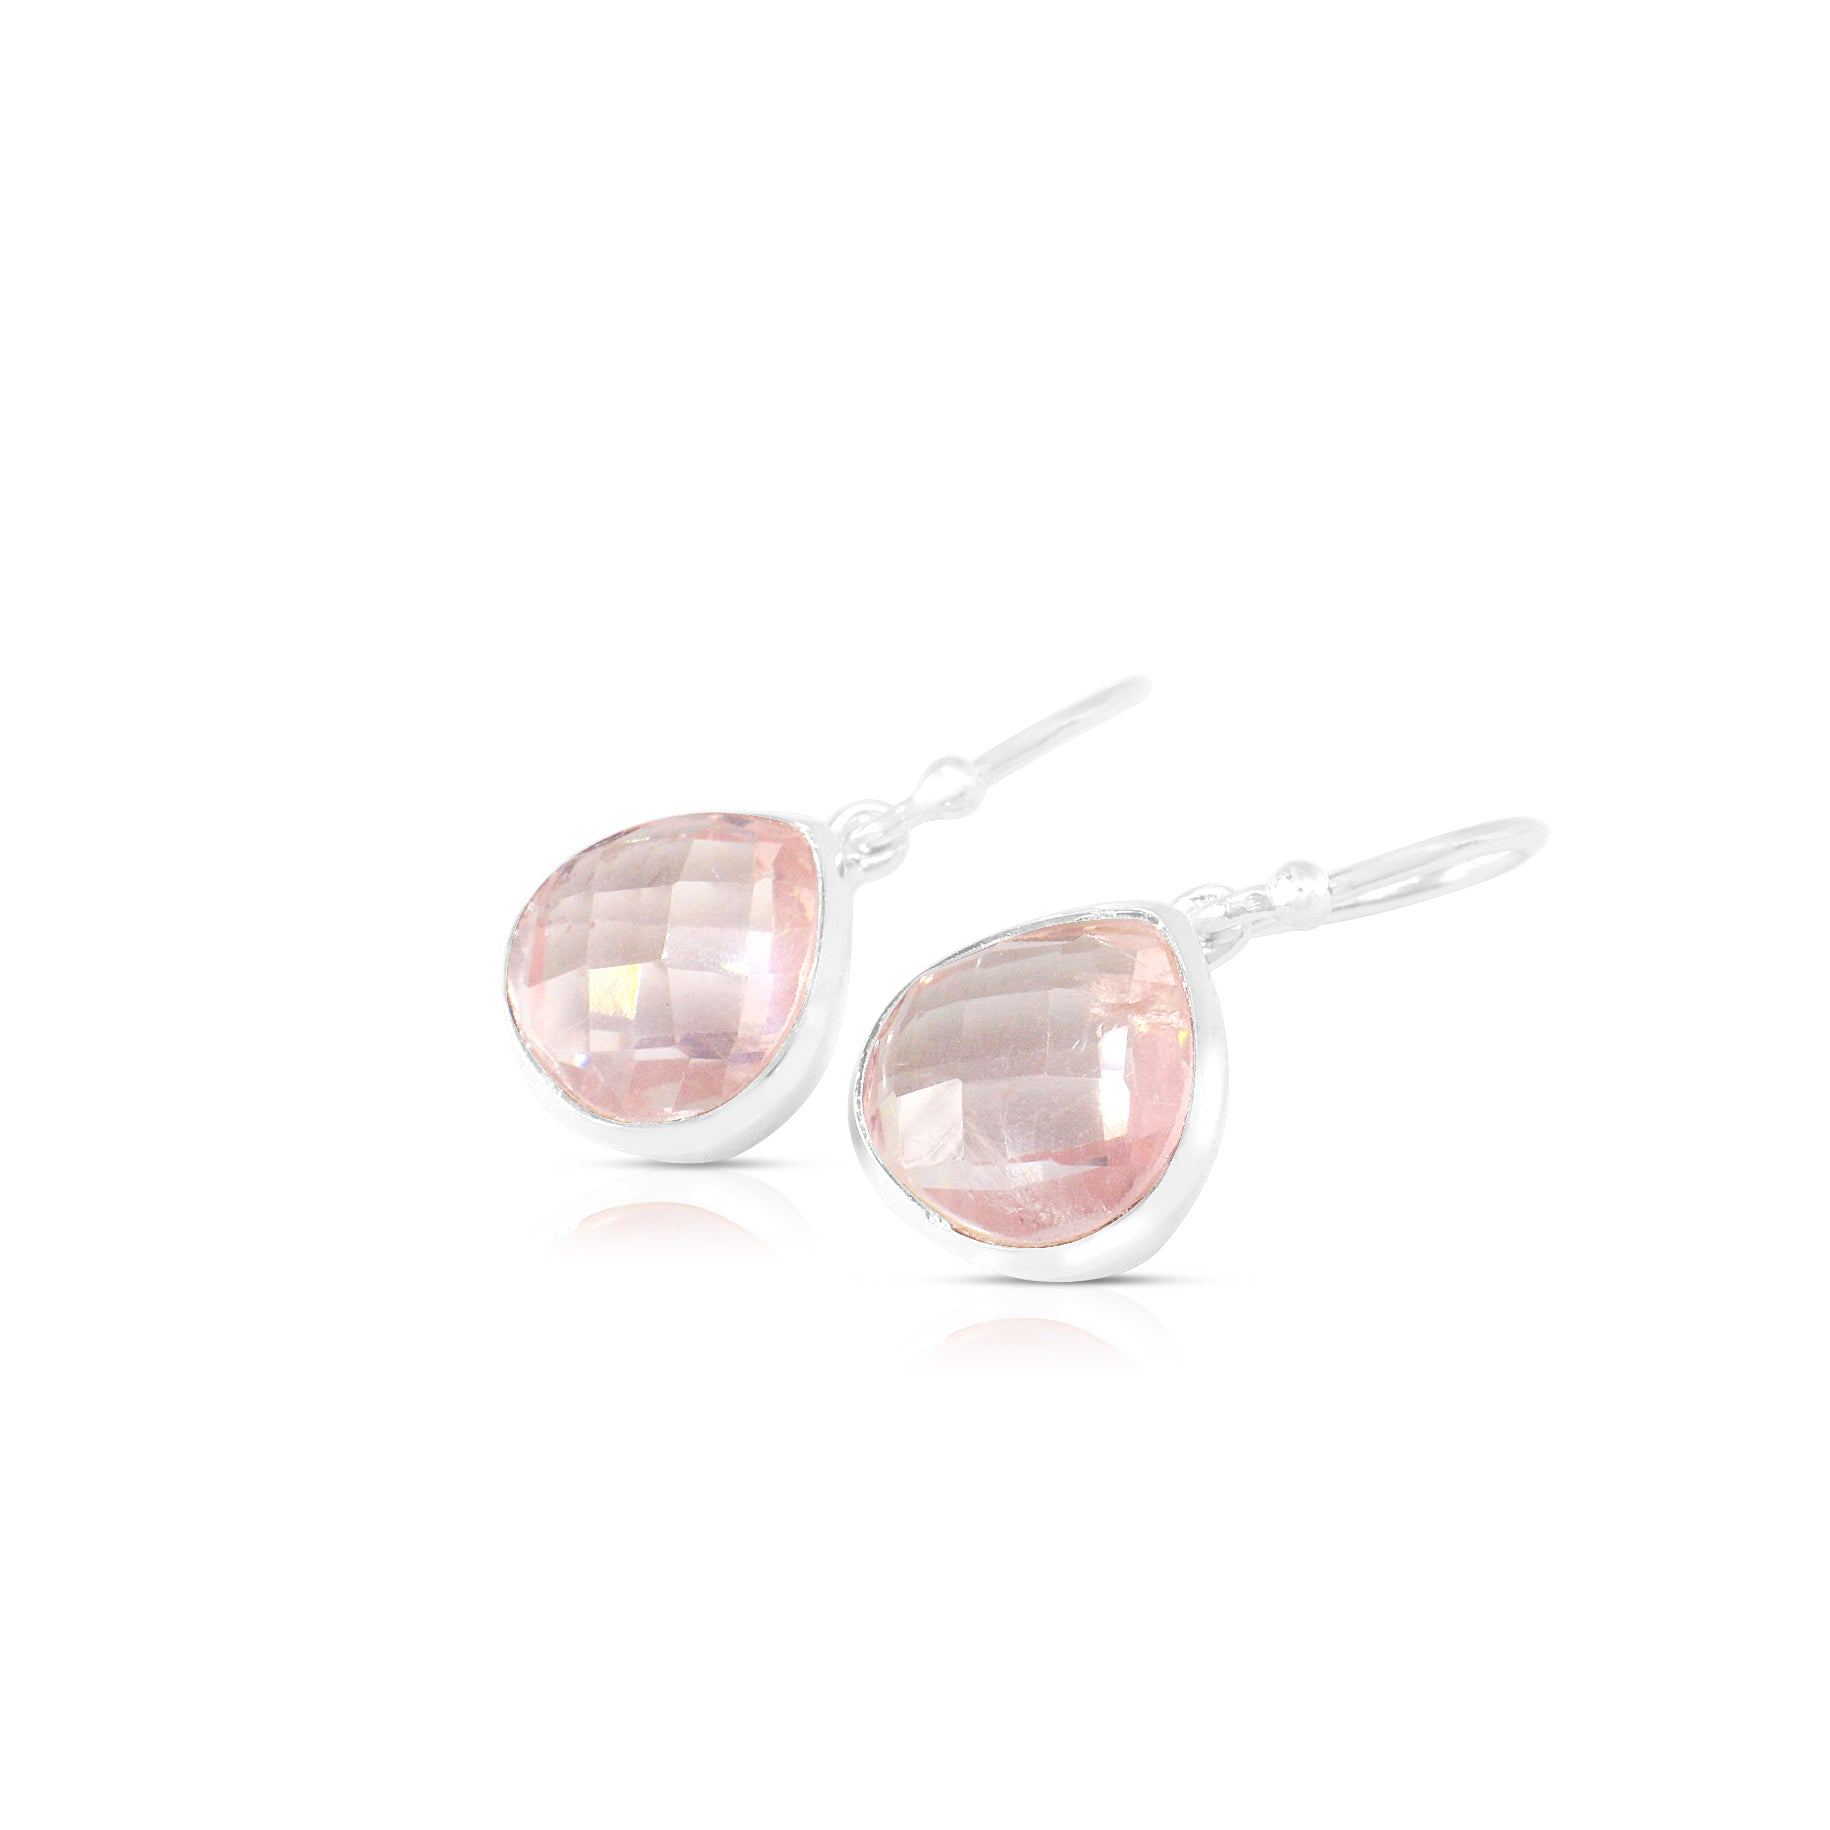 925 Silver Classic Series Earrings - Venus (Rose Quartz) - Tessellate.Co